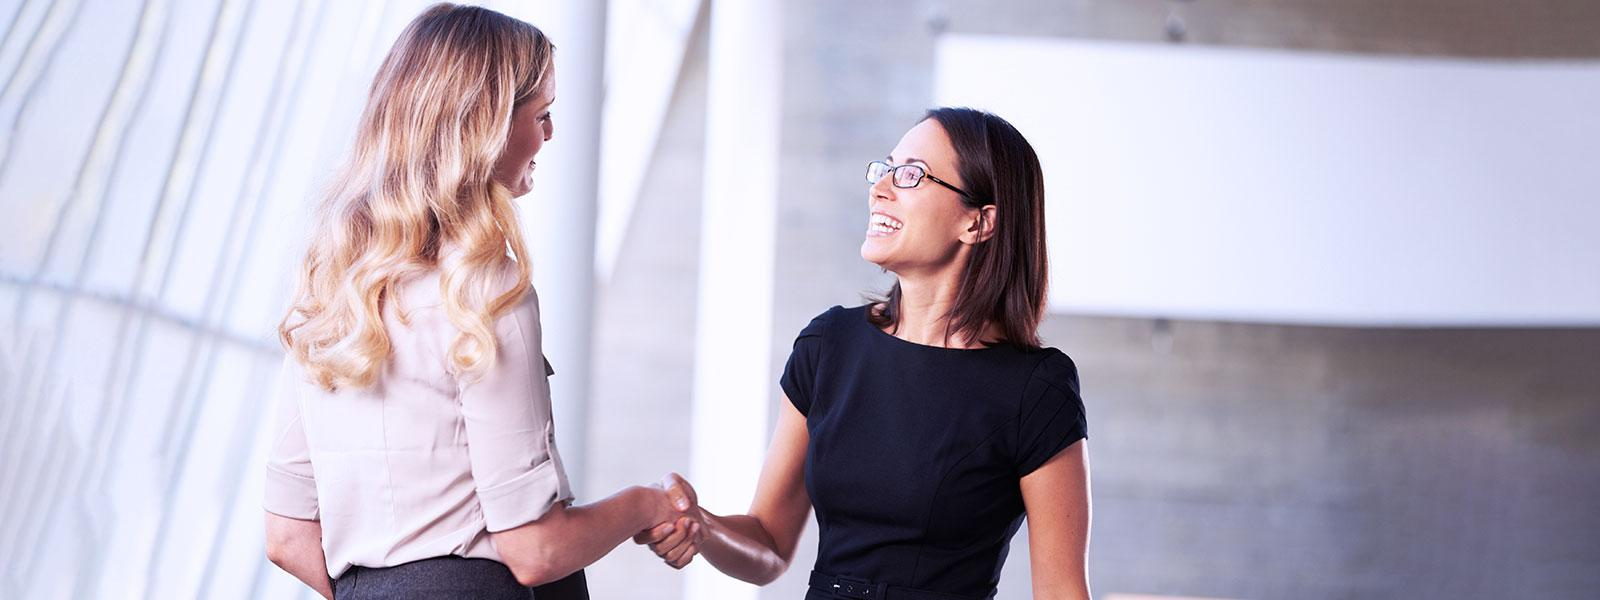 employees shaking hands_interview